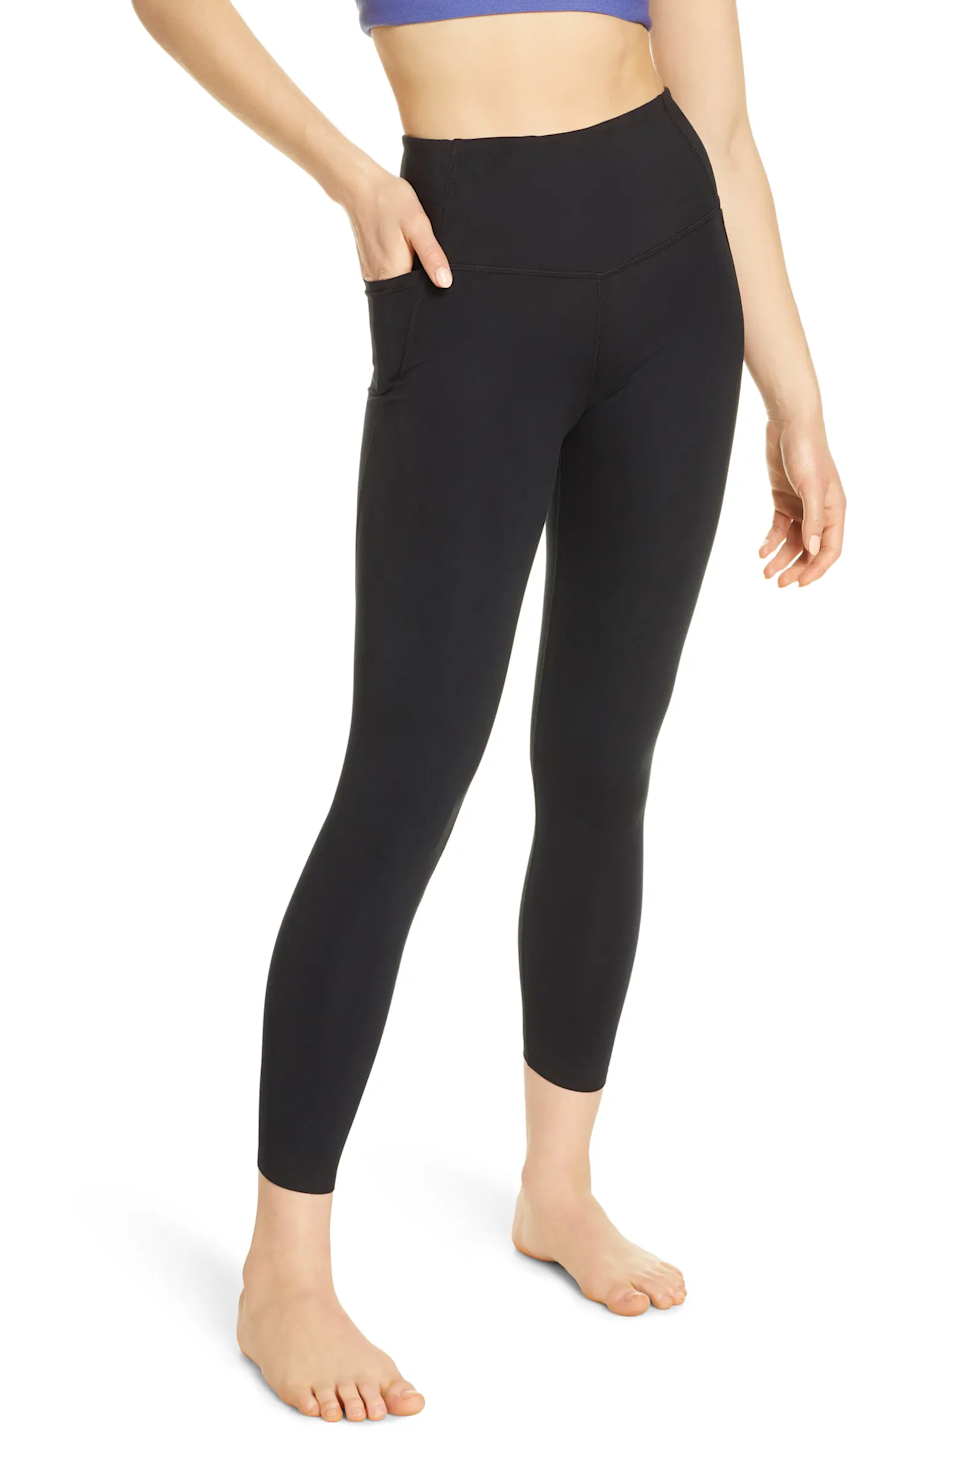 """<h3>Zella High-Waist Studio Pocket Leggings </h3><br><br>Made from moisture-wicking Zeltek fabric, this pair of top-rated and hip-hugging leggings boast one small pocket on each side, perfect for stashing small essentials<br><br>As one reviewer raved, """"I love these leggings. They're super comfortable and the perfect 'tightness' for working out. I'm a big fan of the pockets for my cell phone so I can have my phone on me while working out without having it on my arm or the ground. I highly recommend purchasing these and you can't go wrong for the price!!!""""<br><br><strong>Zella</strong> High Waist Studio Pocket 7/8 Leggings, $, available at <a href=""""https://go.skimresources.com/?id=30283X879131&url=https%3A%2F%2Fwww.nordstrom.com%2Fs%2Fzella-high-waist-studio-pocket-7-8-leggings%2F5460106"""" rel=""""nofollow noopener"""" target=""""_blank"""" data-ylk=""""slk:Nordstrom"""" class=""""link rapid-noclick-resp"""">Nordstrom</a>"""